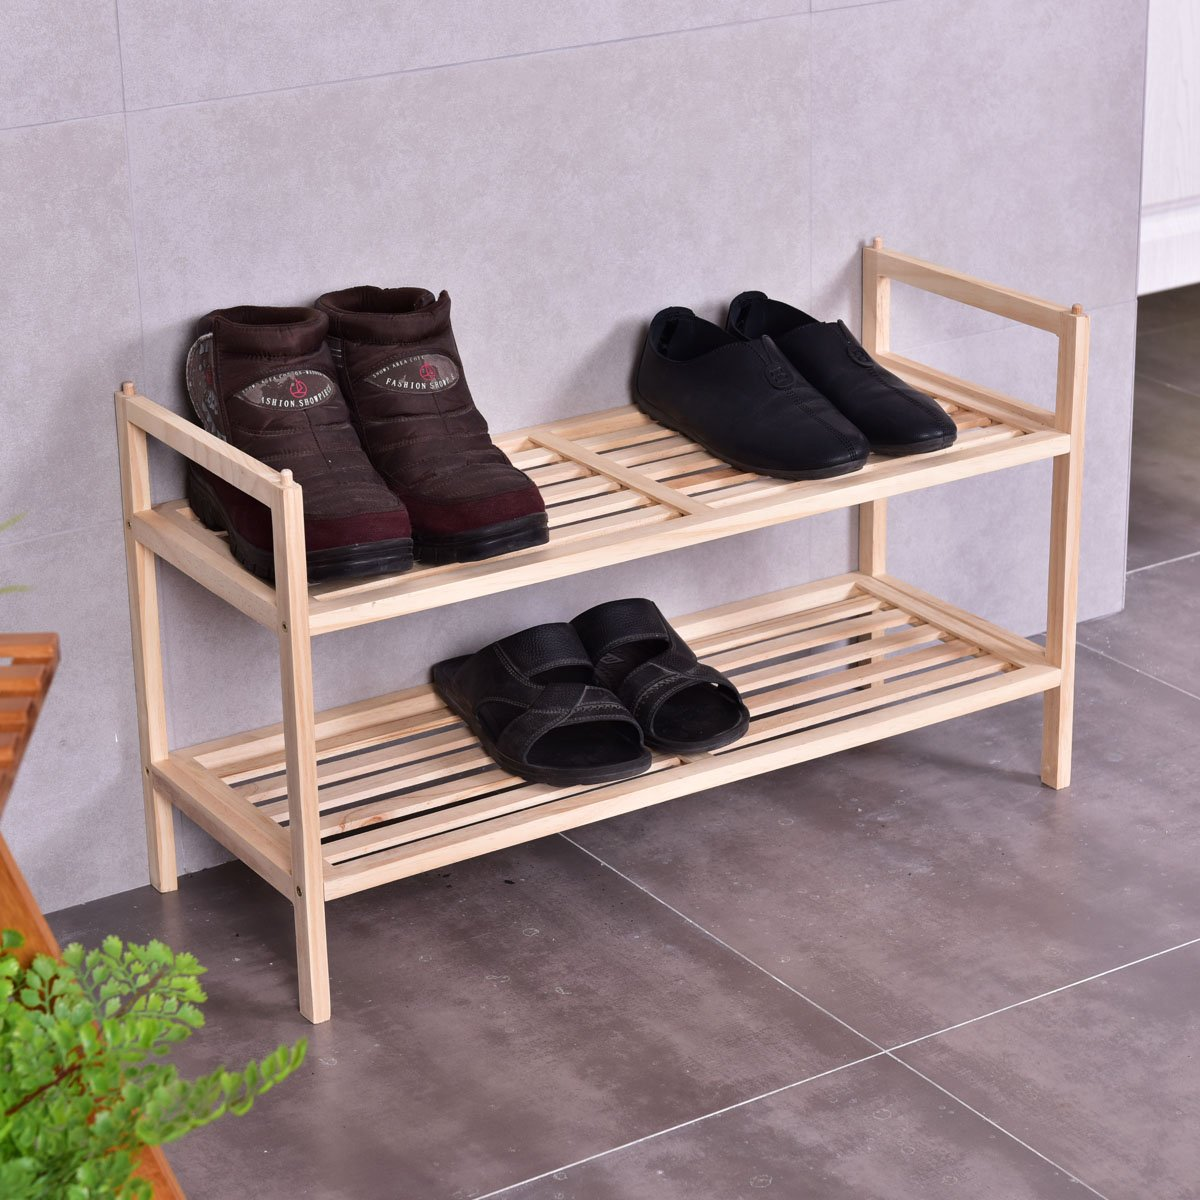 Giantex 2 Tier Solid Wood Shoe Rack Shelf Storage Organizer Wooden Slats Entryway Home by Giantex (Image #2)